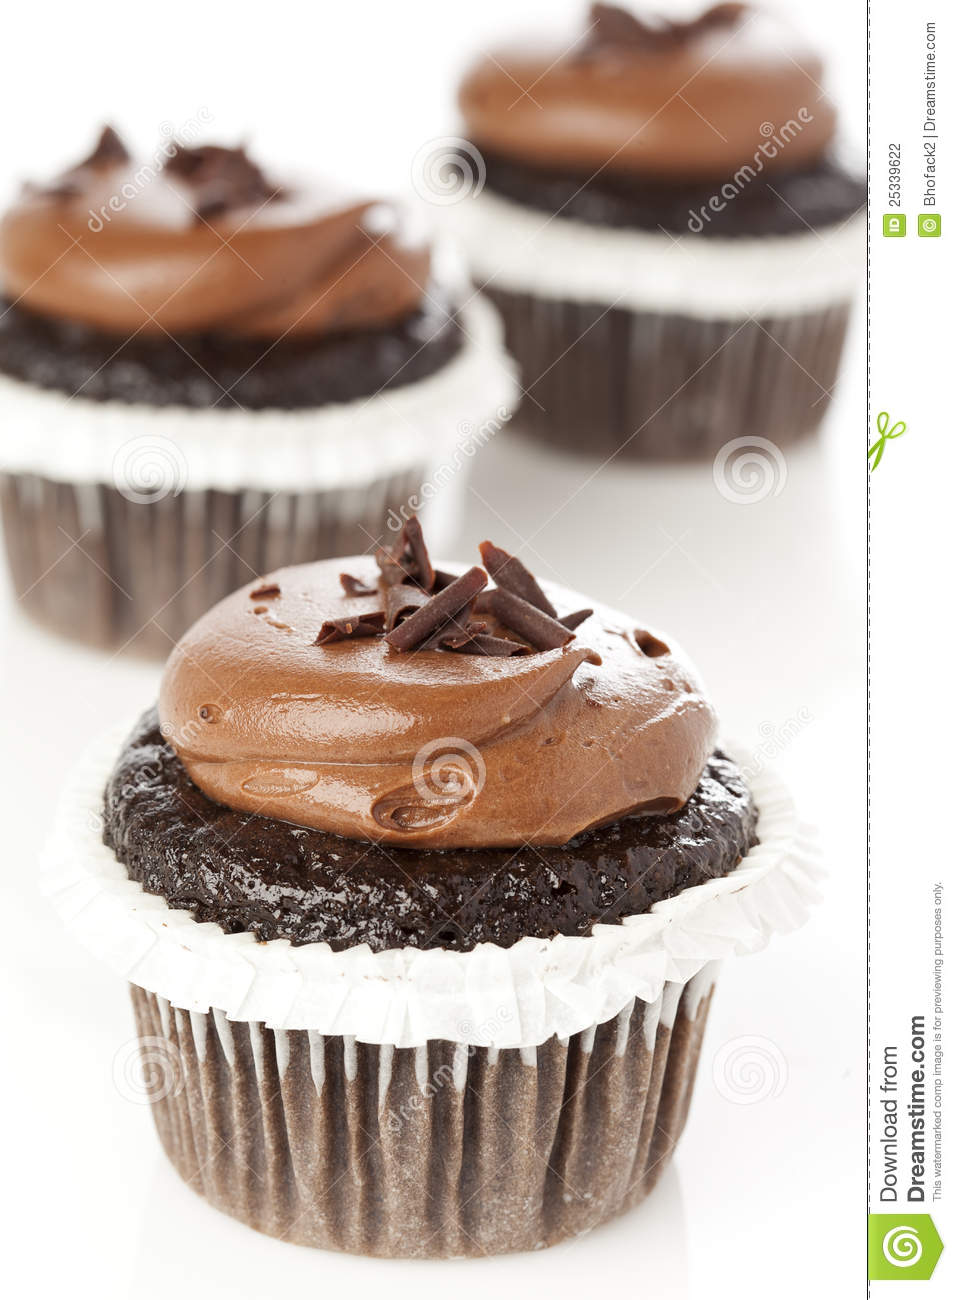 Chocolate Frosted Cupcake Stock Photography - Image: 25339622